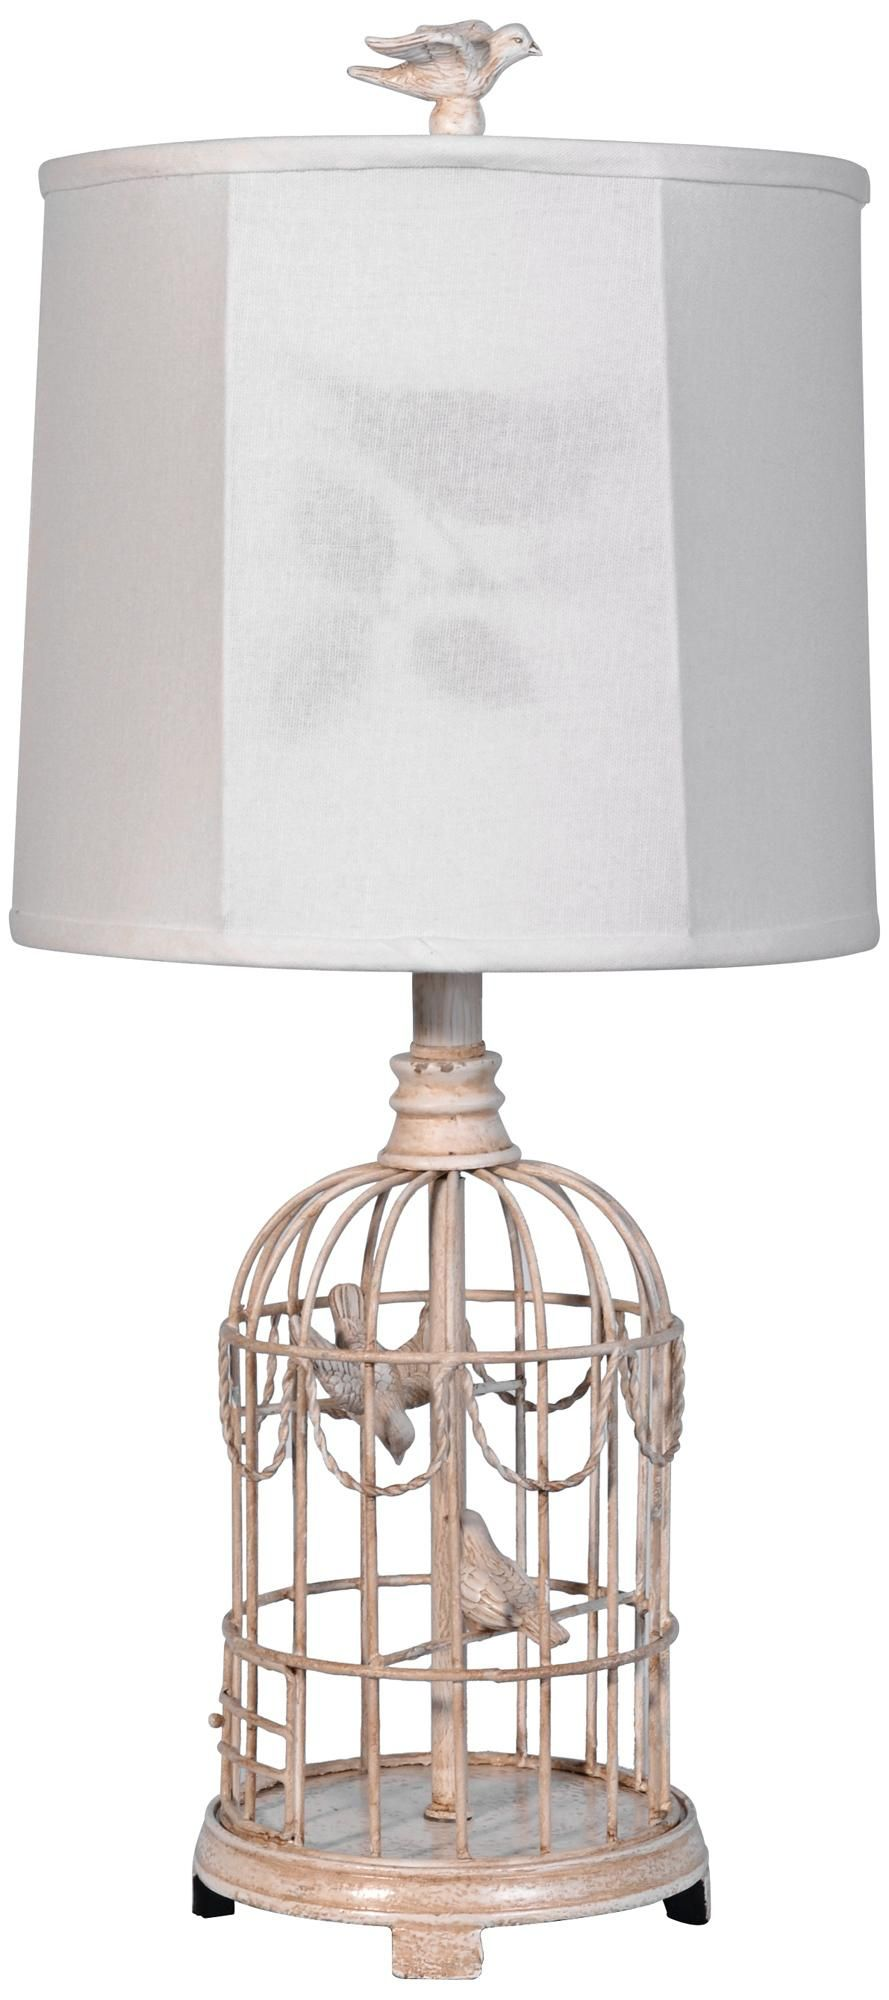 Bird cage table lamp with linen shade lampsplus for the bird cage table lamp with linen shade lampsplus geotapseo Image collections